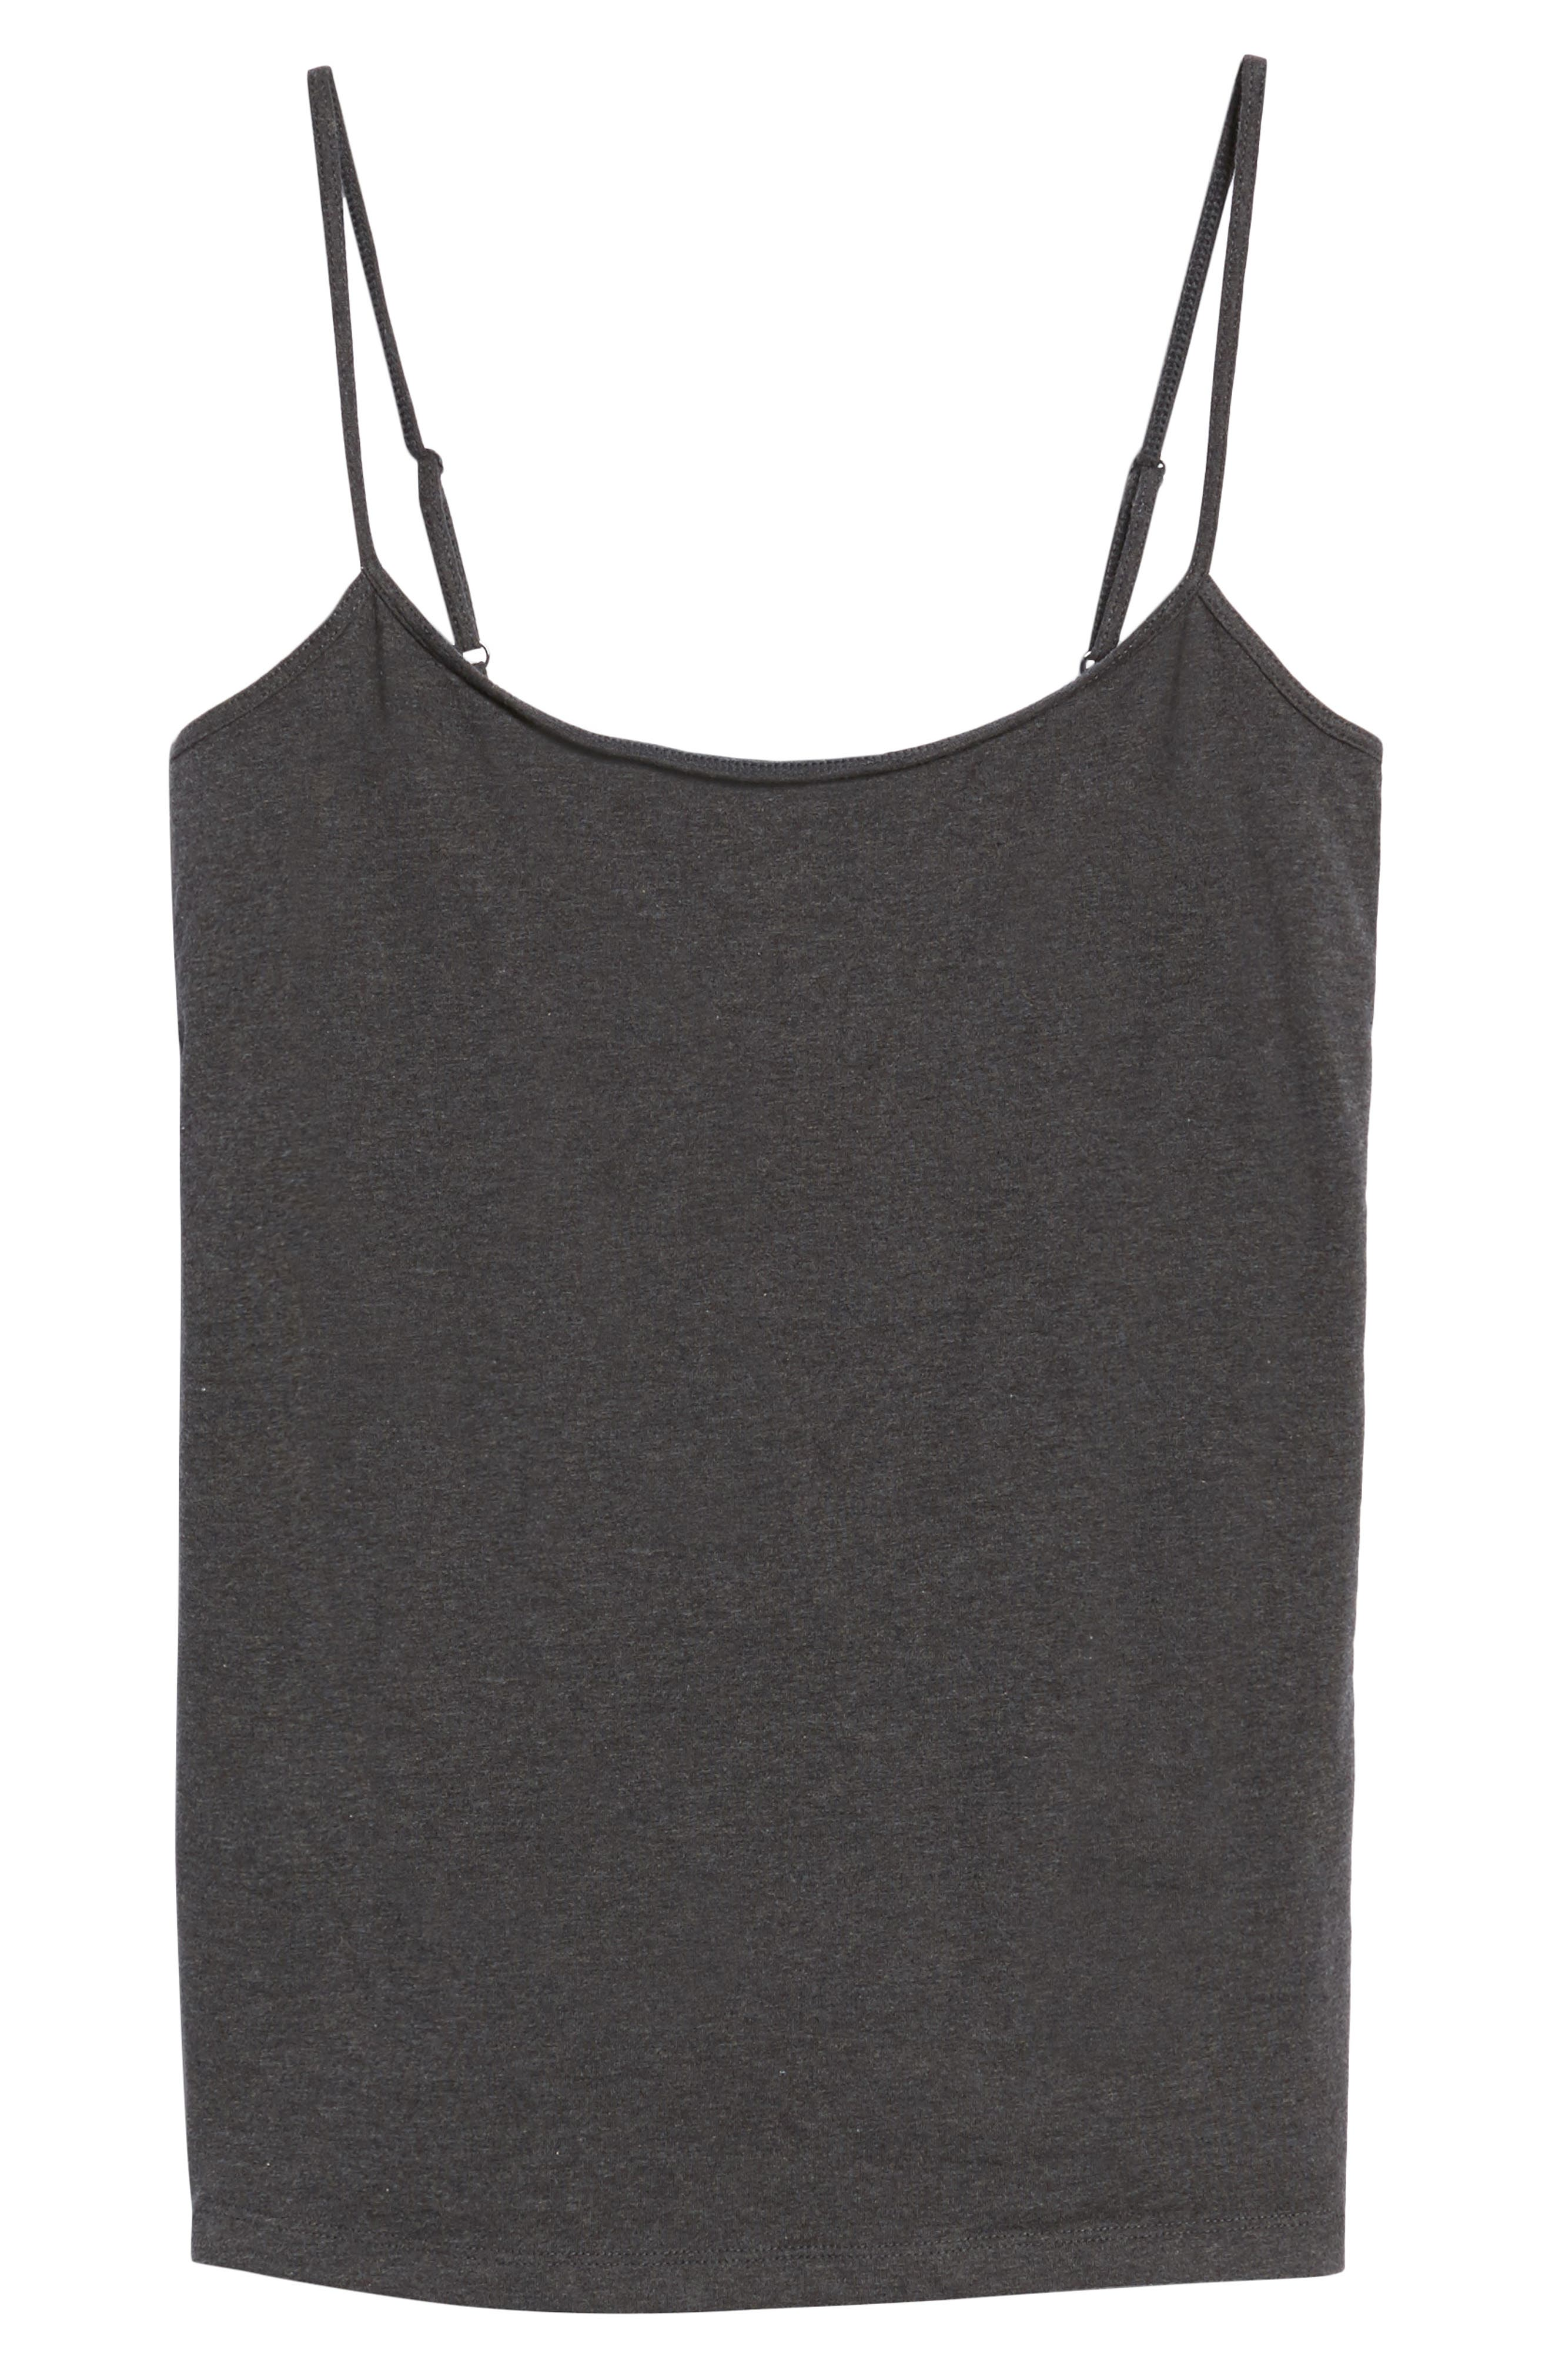 'Absolute' Camisole,                             Alternate thumbnail 6, color,                             032